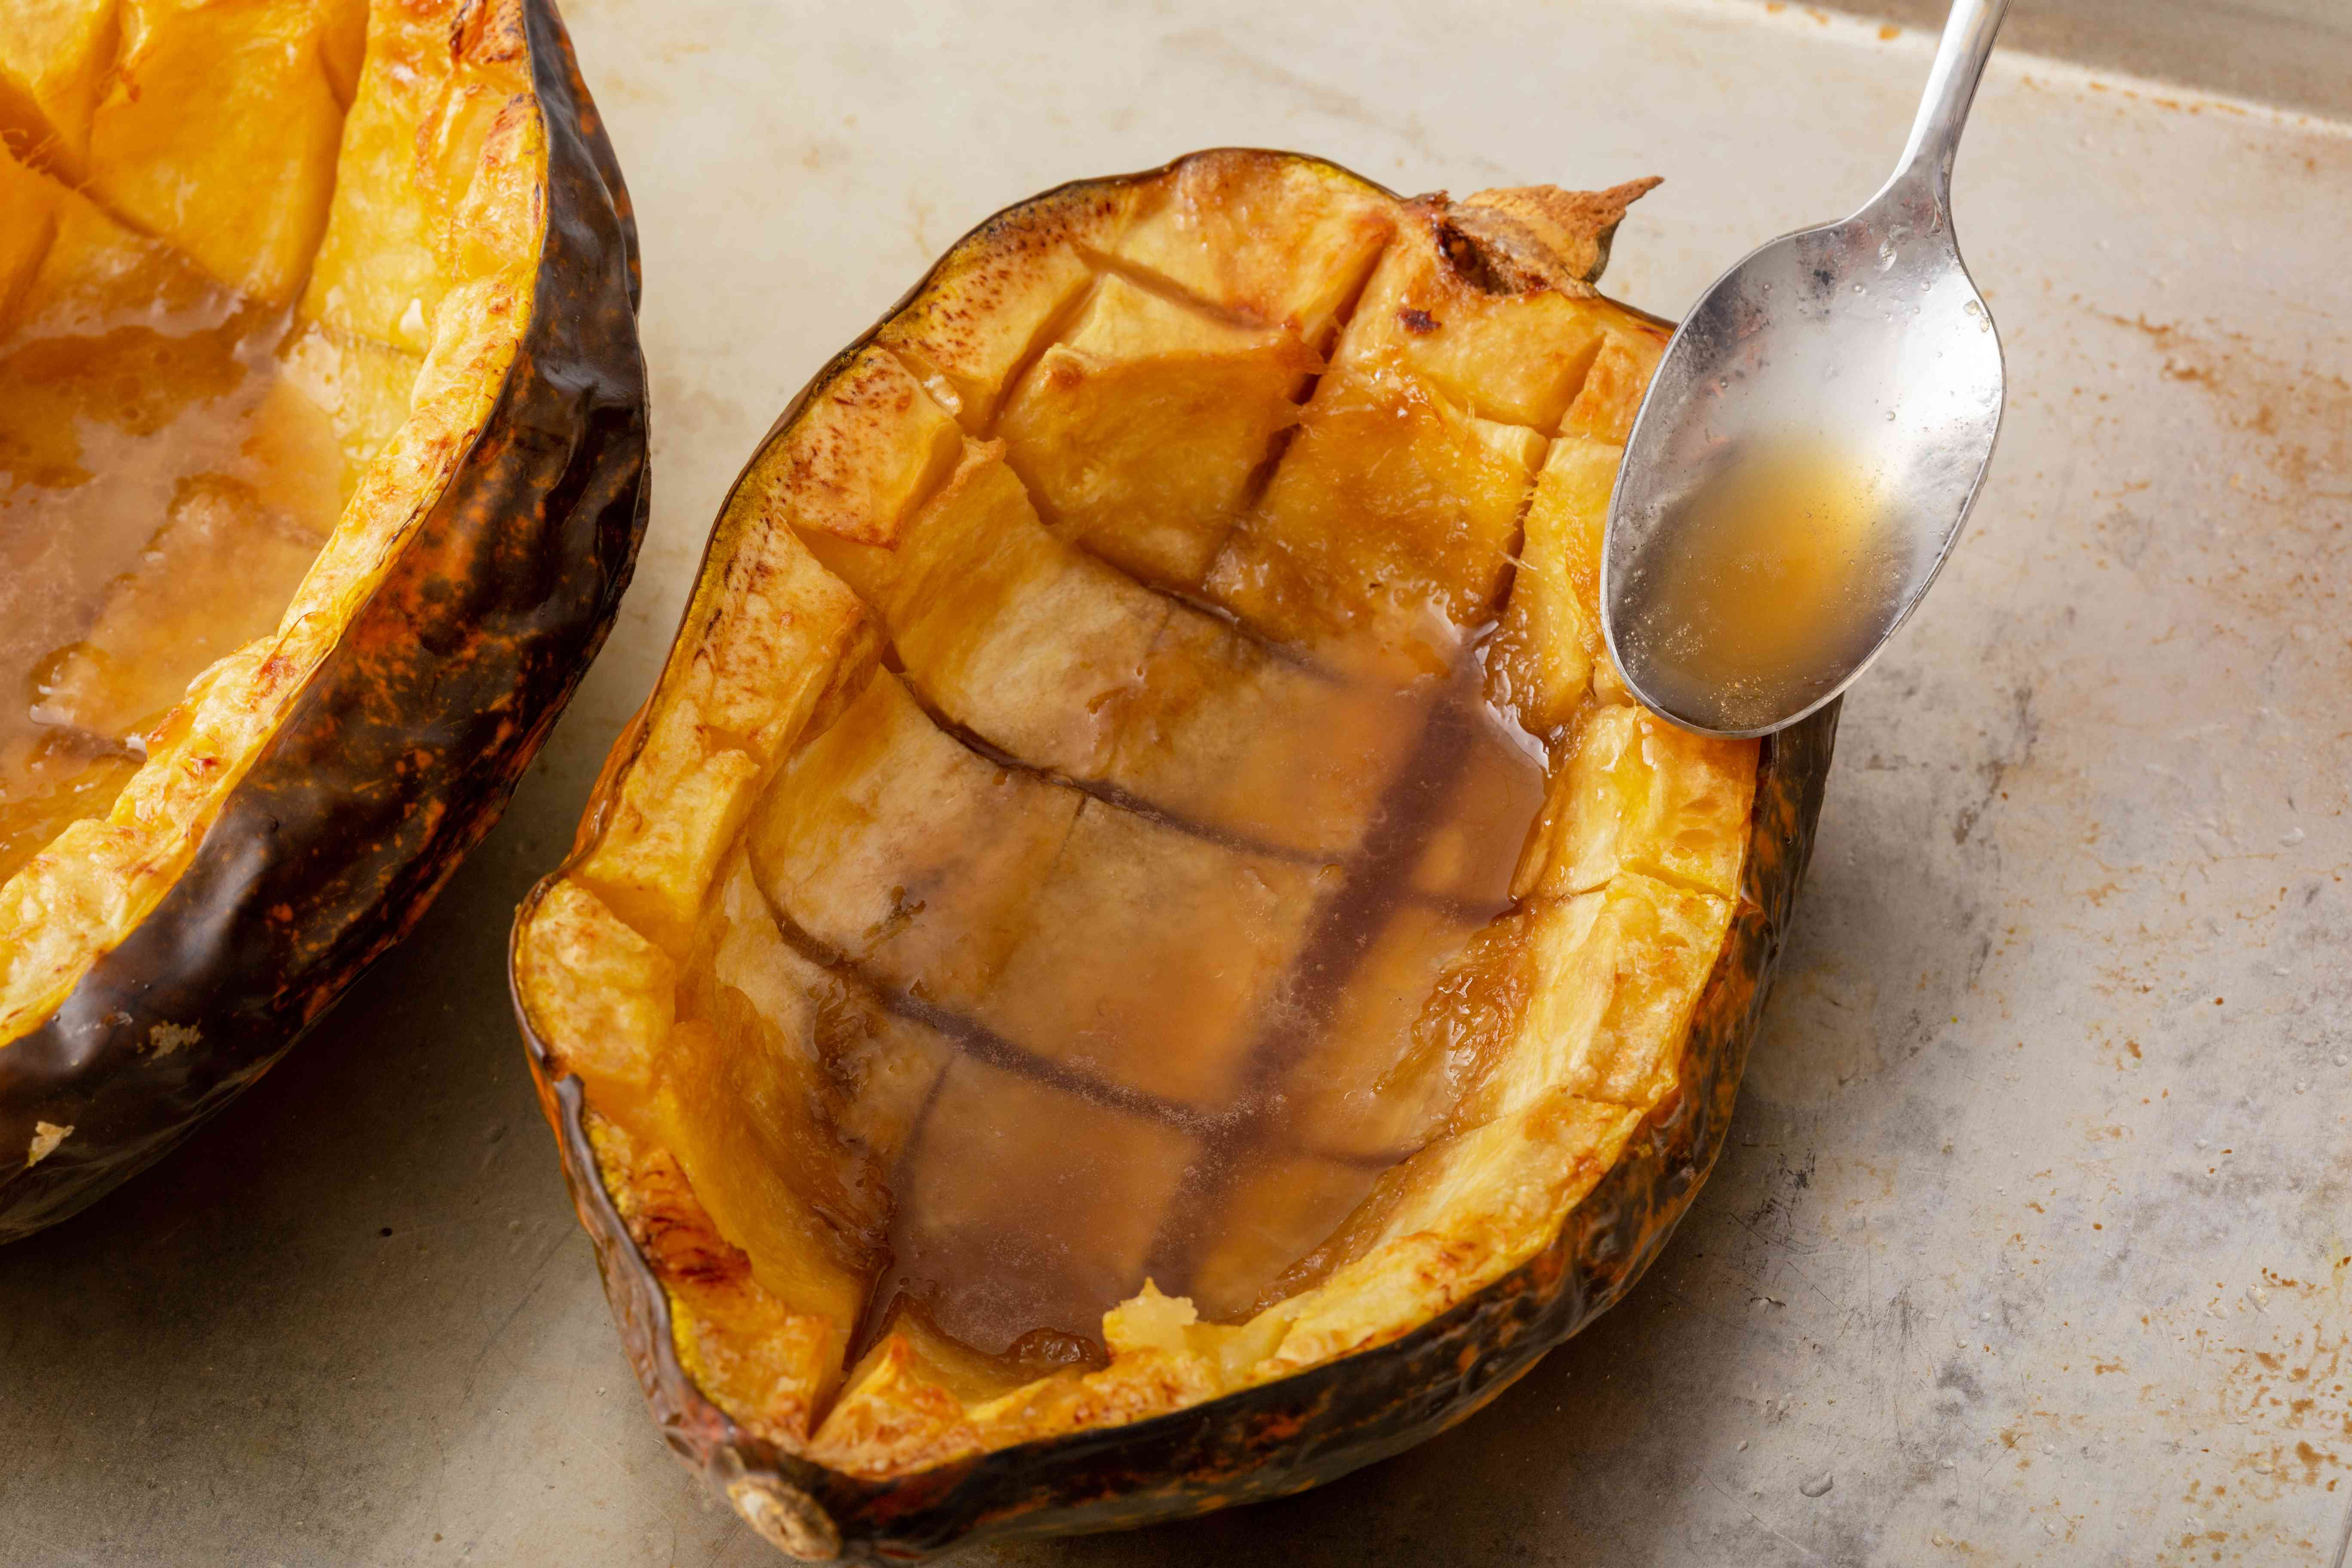 Baked acorn squash with sauce spooned overtop.